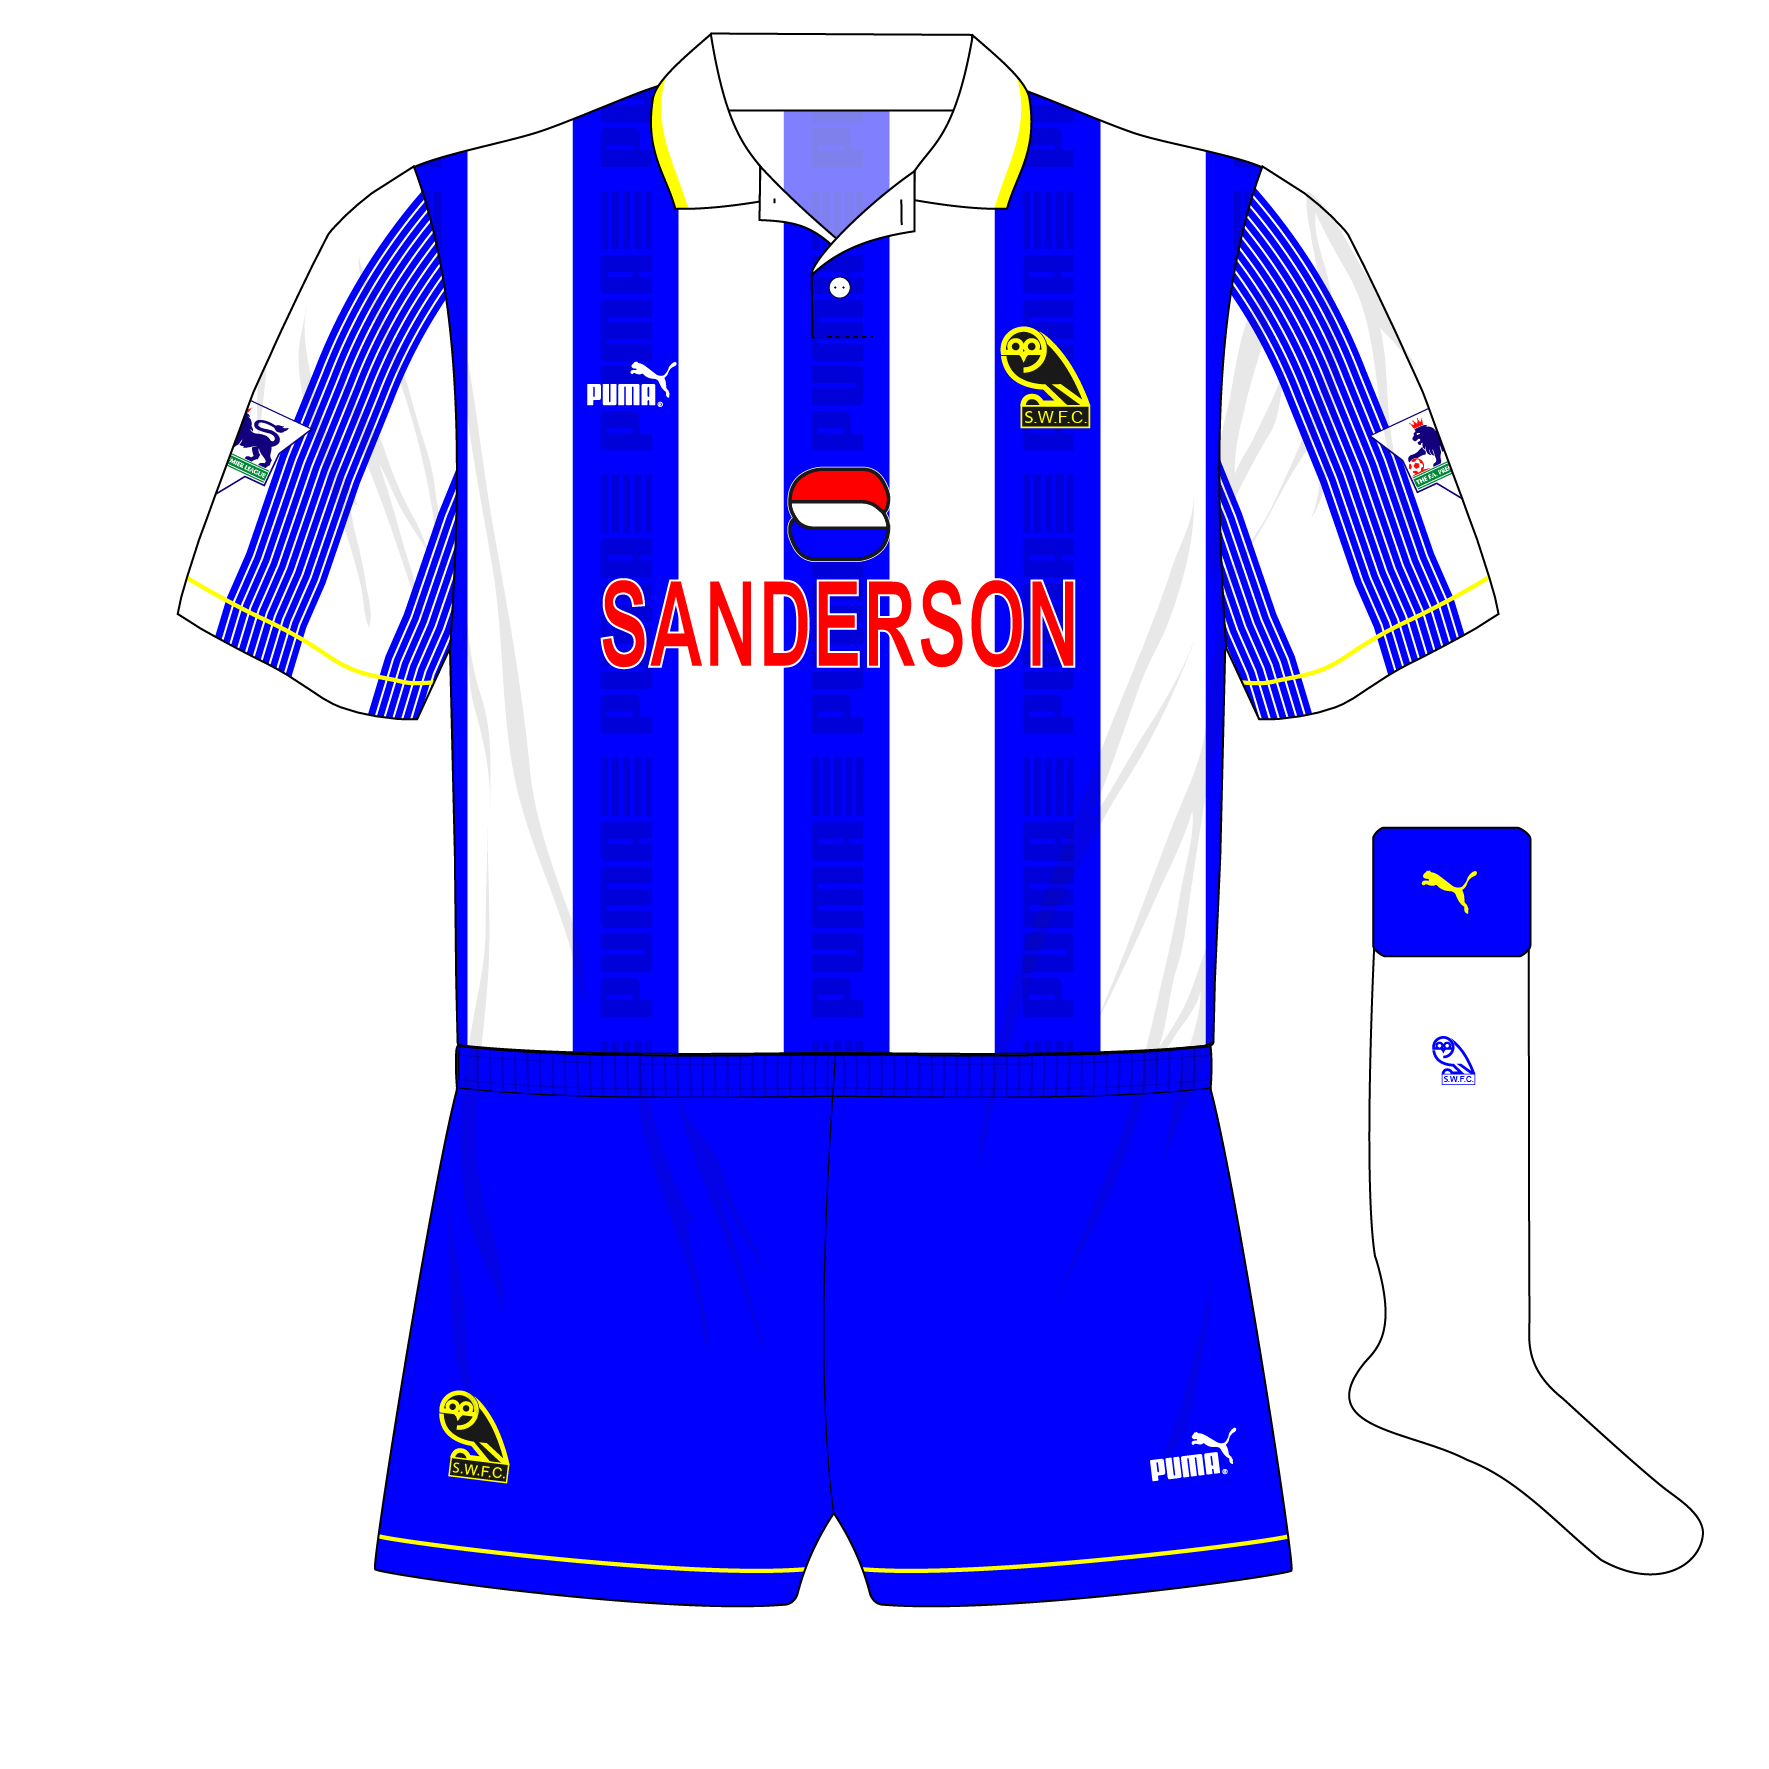 Sheffield-Wednesday-1993-1994-Puma-home-kit-01